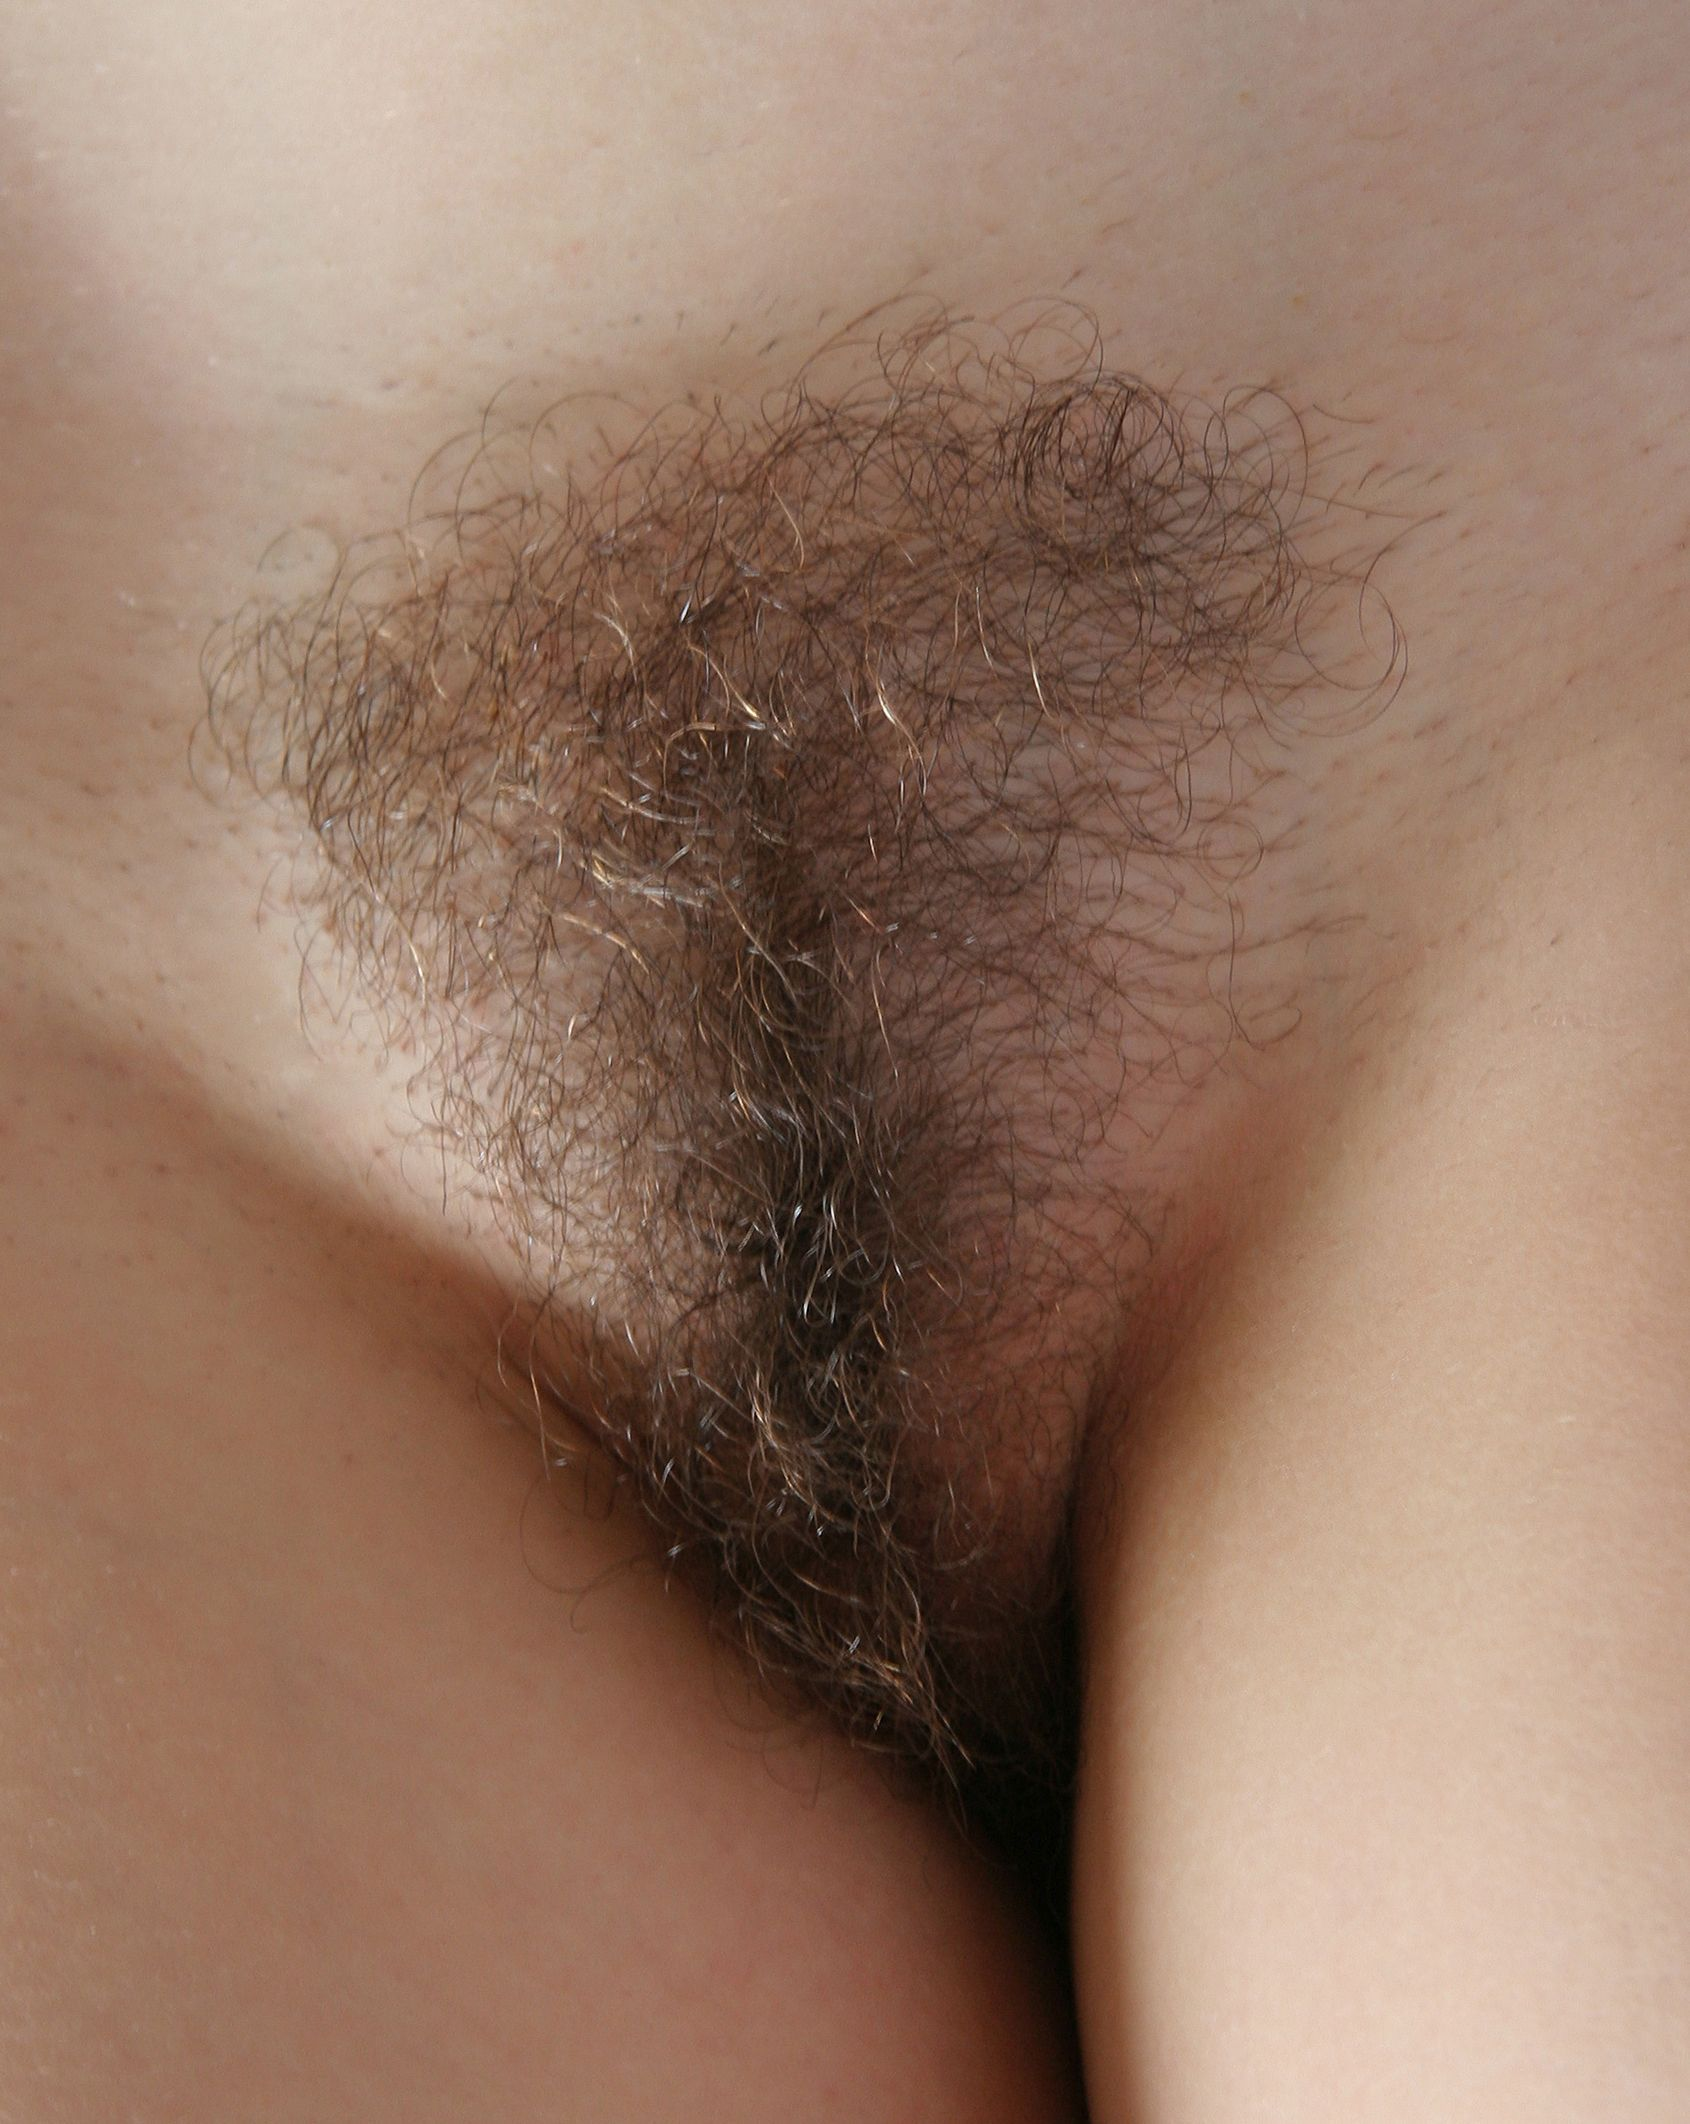 hairy female pubes